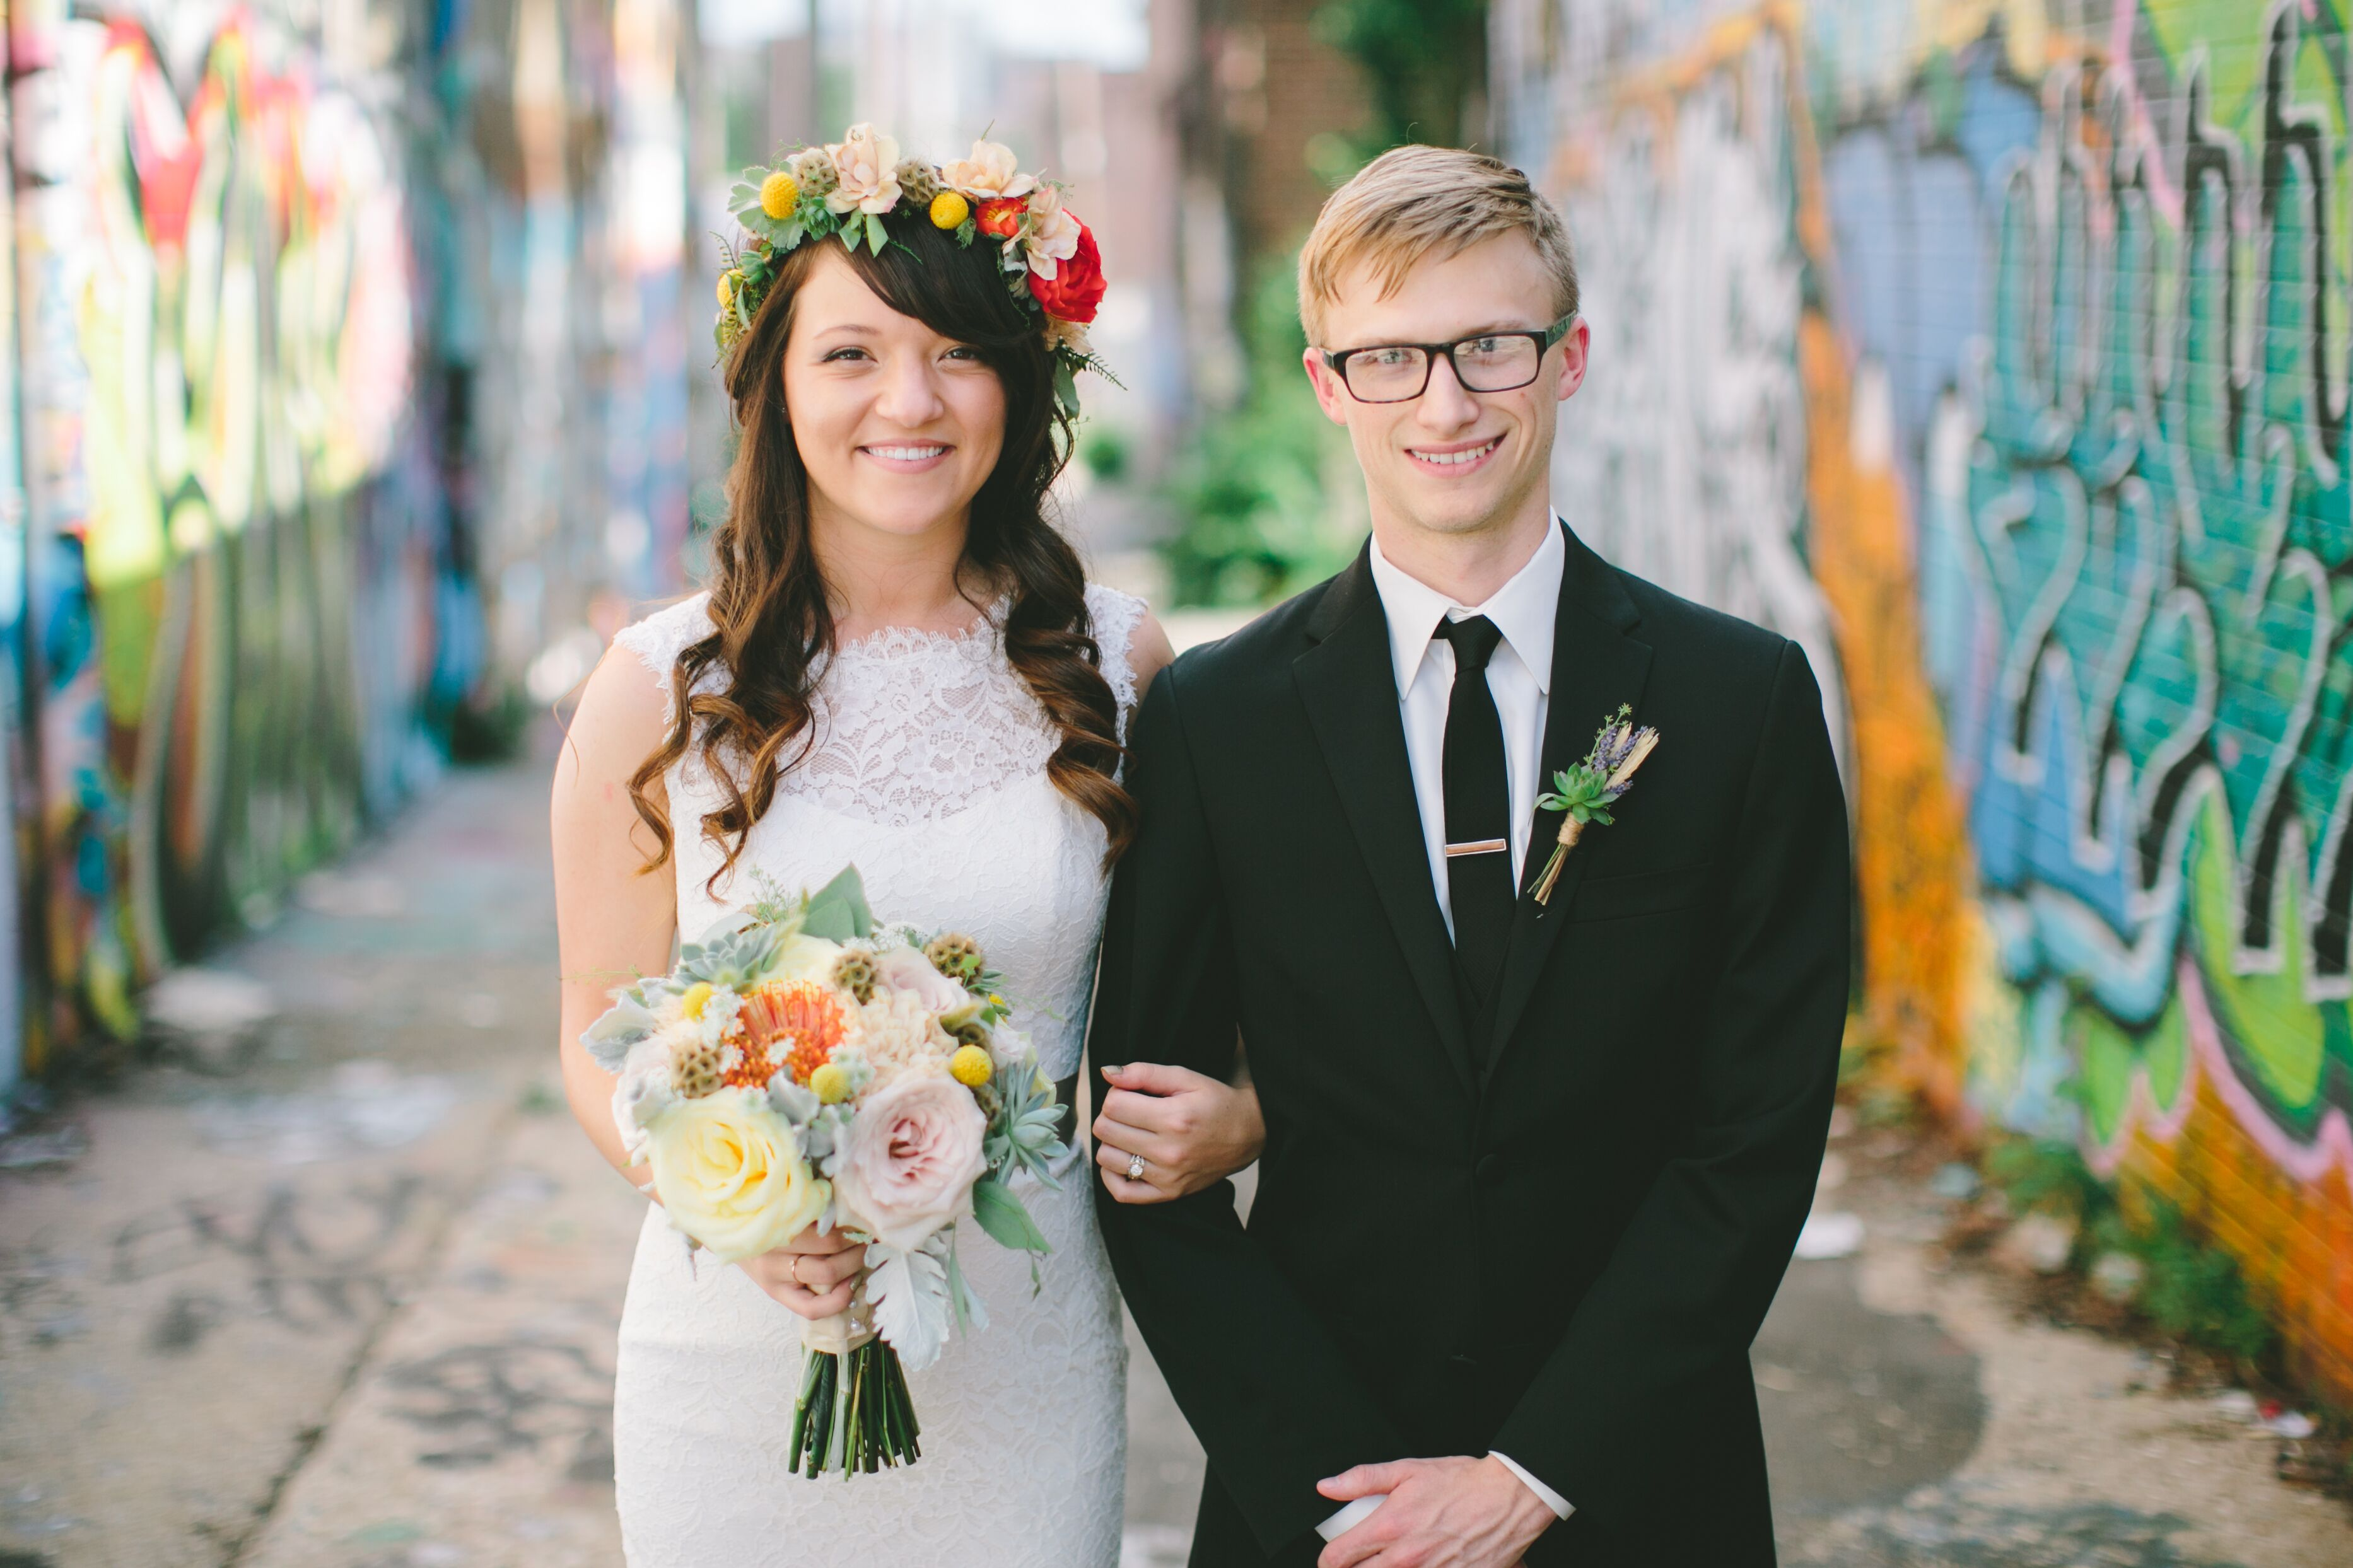 A Rustic Bohemian Wedding At The Guild In Kansas City Missouri